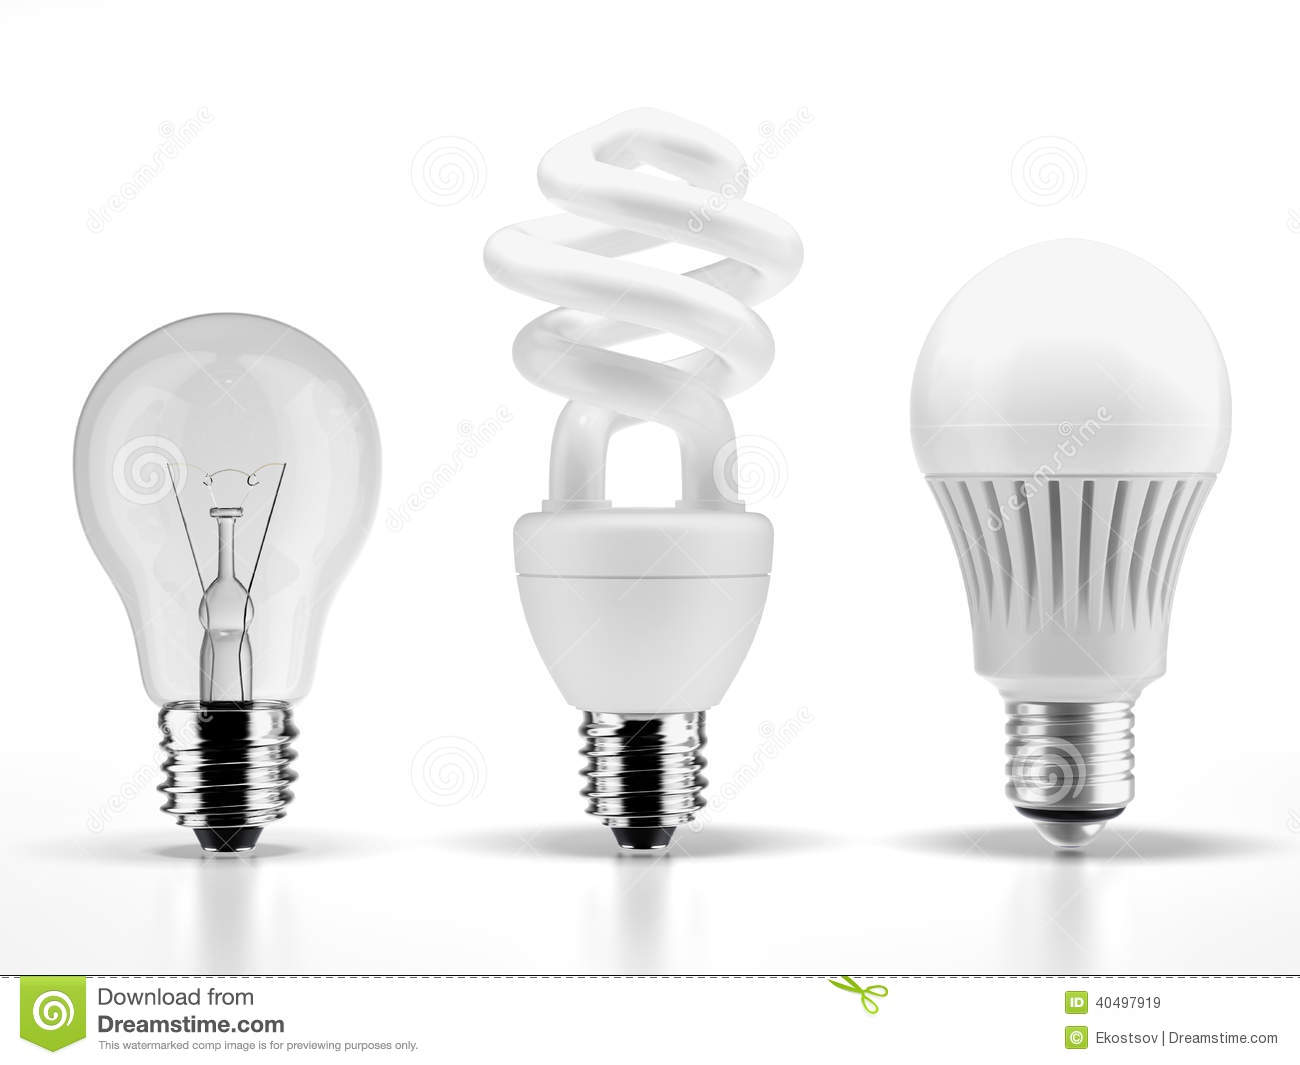 Tungsten, fluorescent and LED bulbs